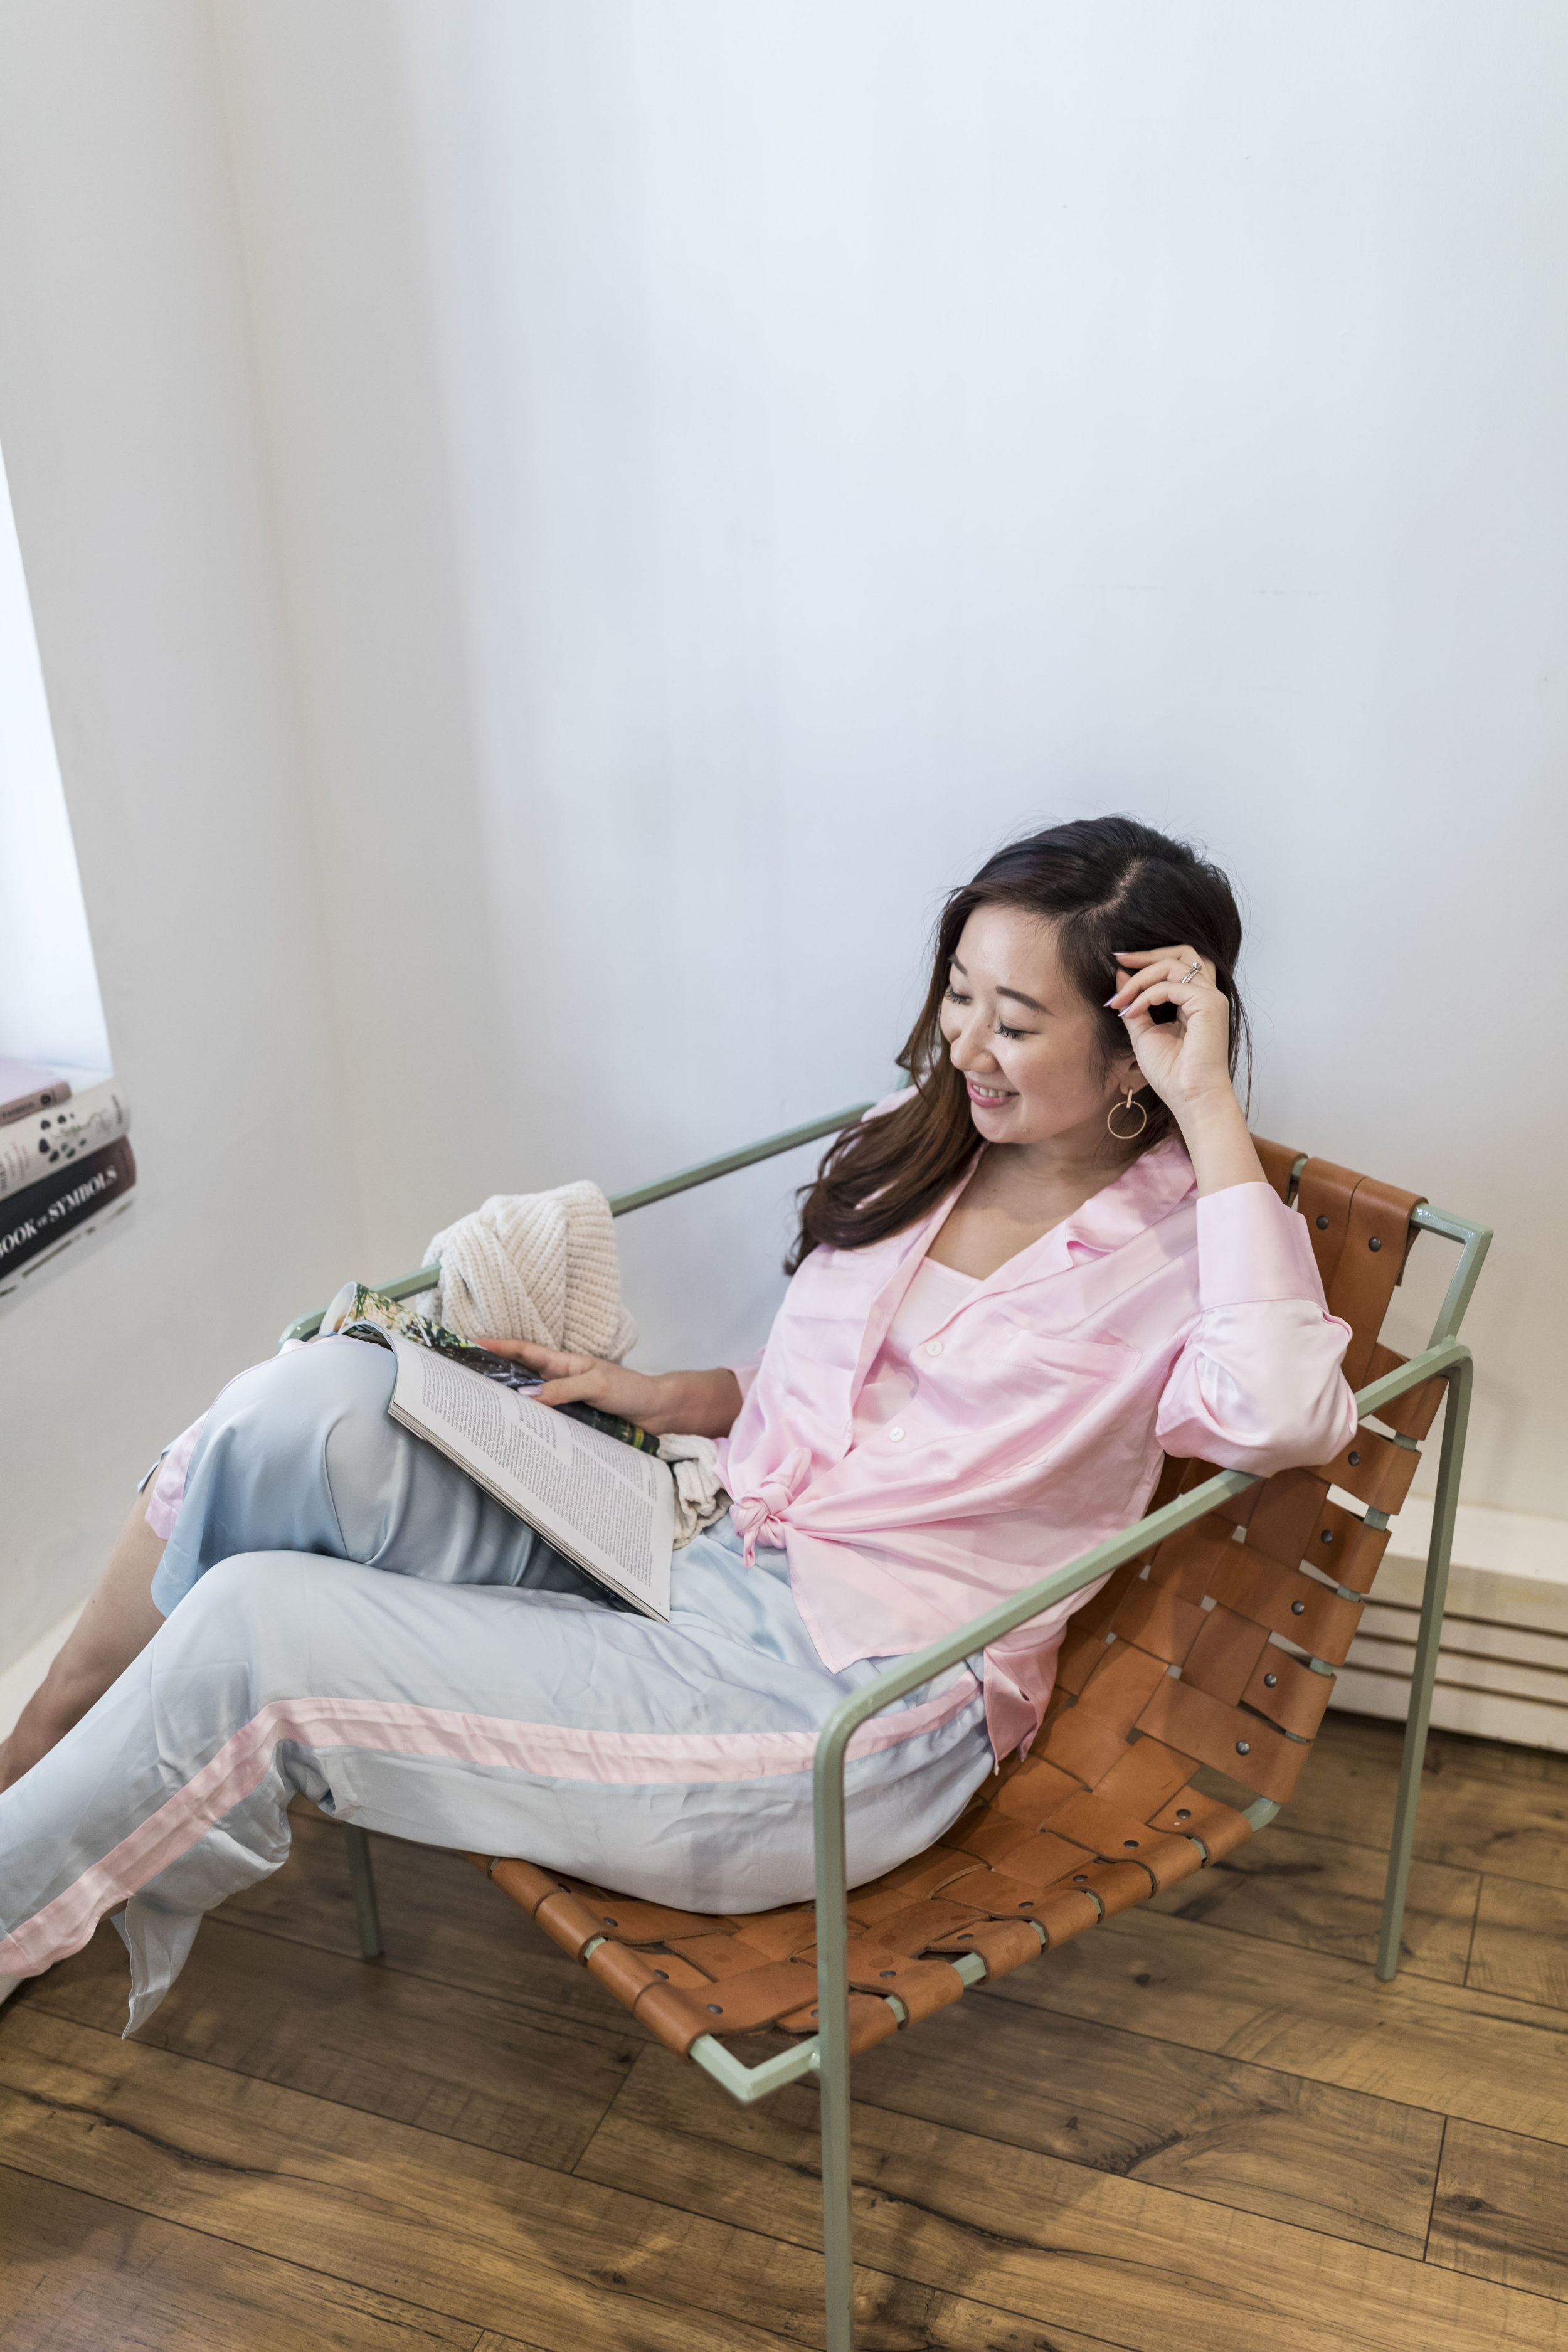 """Chilling at Home - What I wear often determines how I feel. So I do find myself to be less efficient and a bit lazier when I'm in my oversized, 10-year-old """"distressed"""" t-shirt and my dad's old shorts that was passed down to me because it shrunk in the dryer once.I've always wanted to wear chic, adorable sleepwear, but often find them either really expensive (and requires high maintenance), or really cheap and low quality. No Plans NYC is likely the first sleepwear brand that I've recently came across, offering stylish, quality pieces at a reasonable price.And the best part is: I can leave the house and show off the pieces, too!—Photos by Ashley Gallerani Photography."""